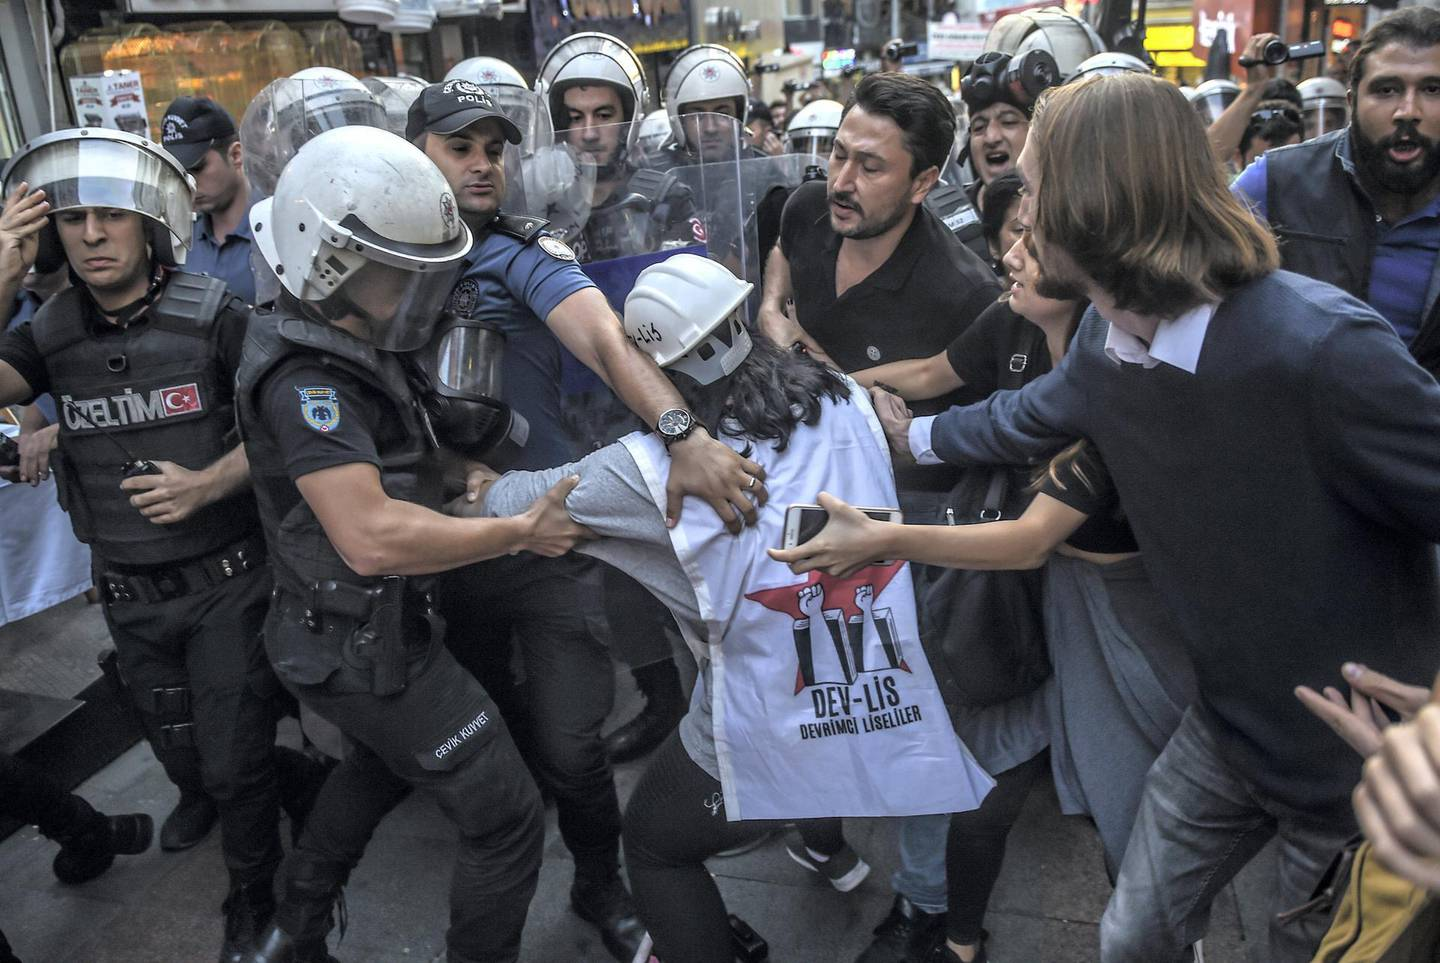 Turkish police officers arrest protesters, gathered in support of workers that were arrested earlier for protesting over labour conditions at Istanbul's new airport, in Istanbul, on September 15, 2018. A trade union leader says police rounded up more than 500 construction workers after they staged a protest at the new airport. AFP